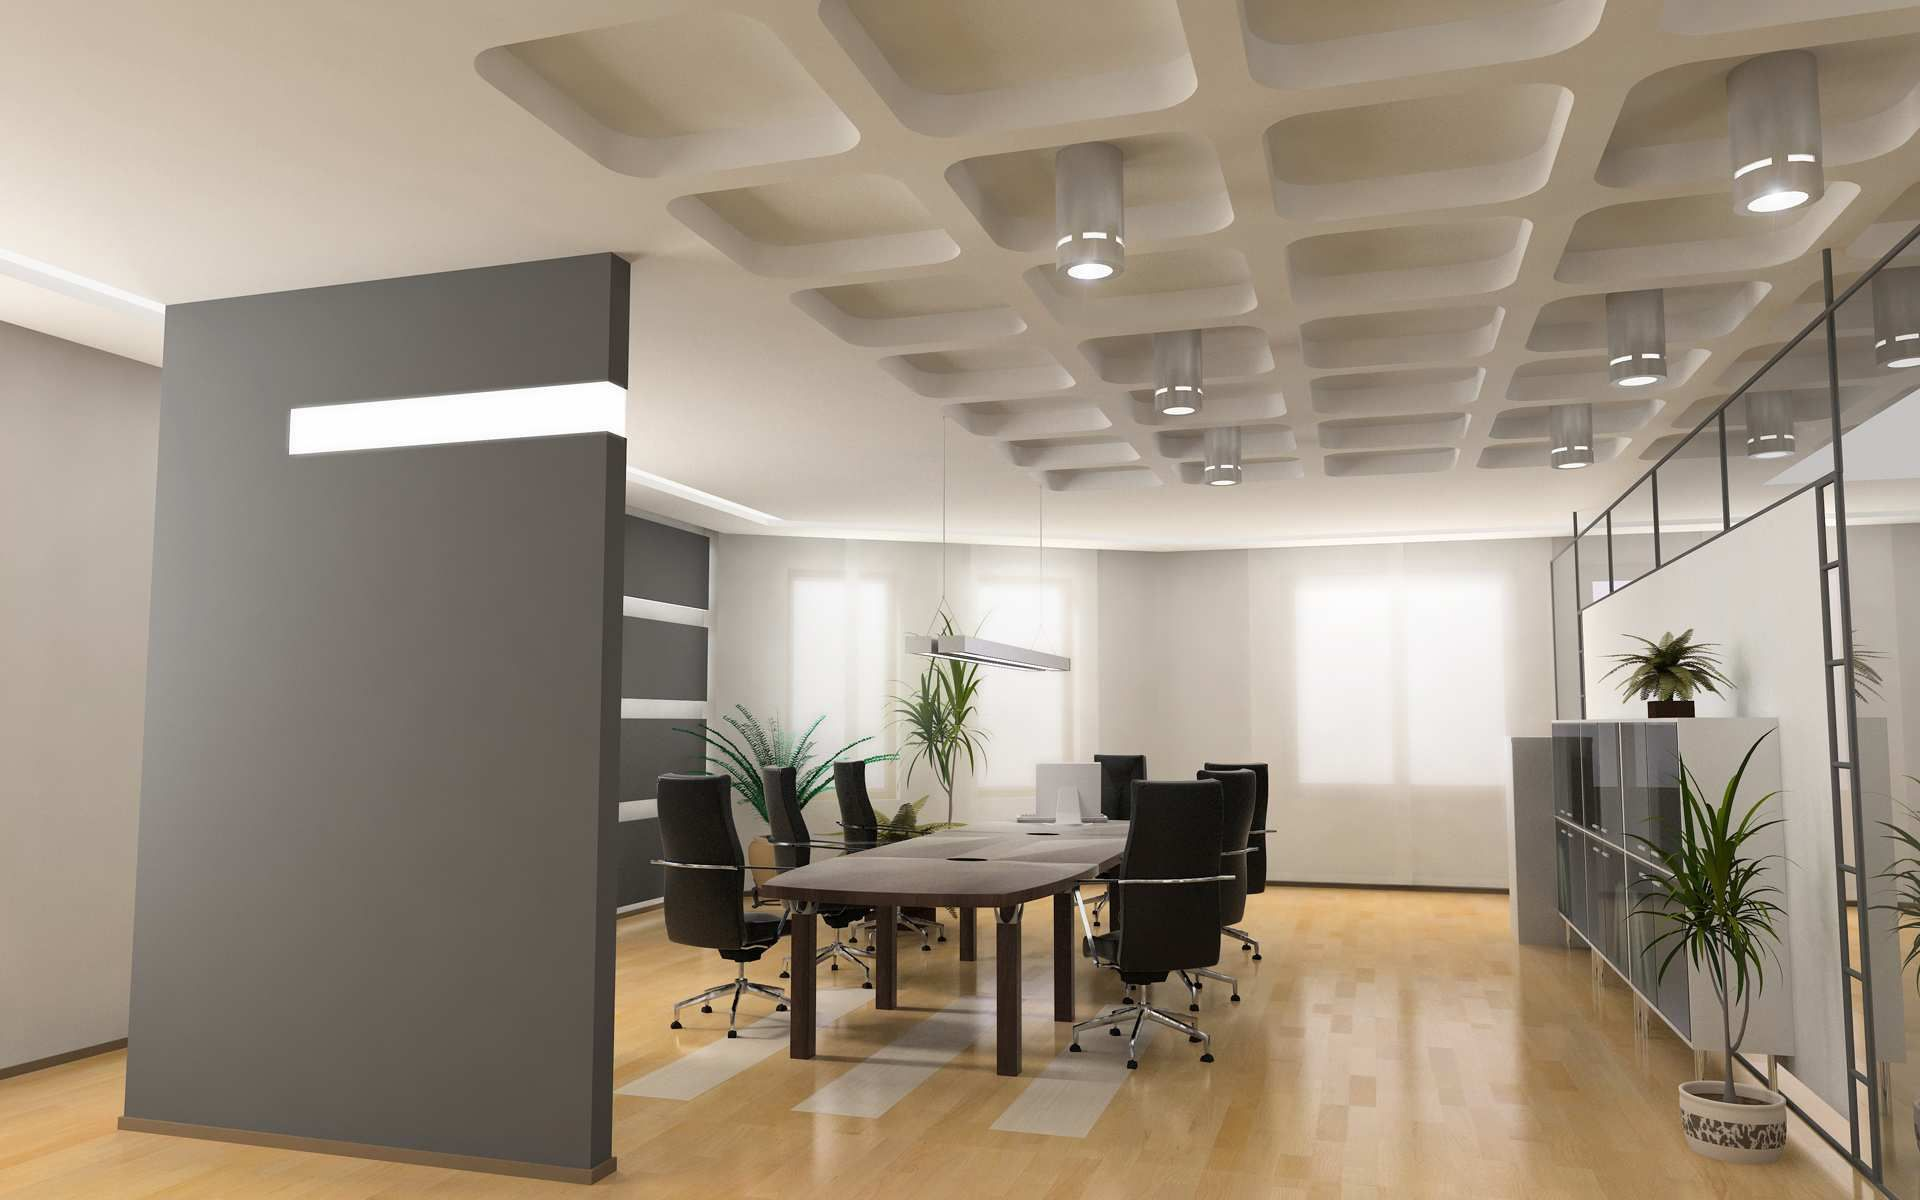 Groovy 17 Best Images About Office Design 2015 On Pinterest Home Office Largest Home Design Picture Inspirations Pitcheantrous